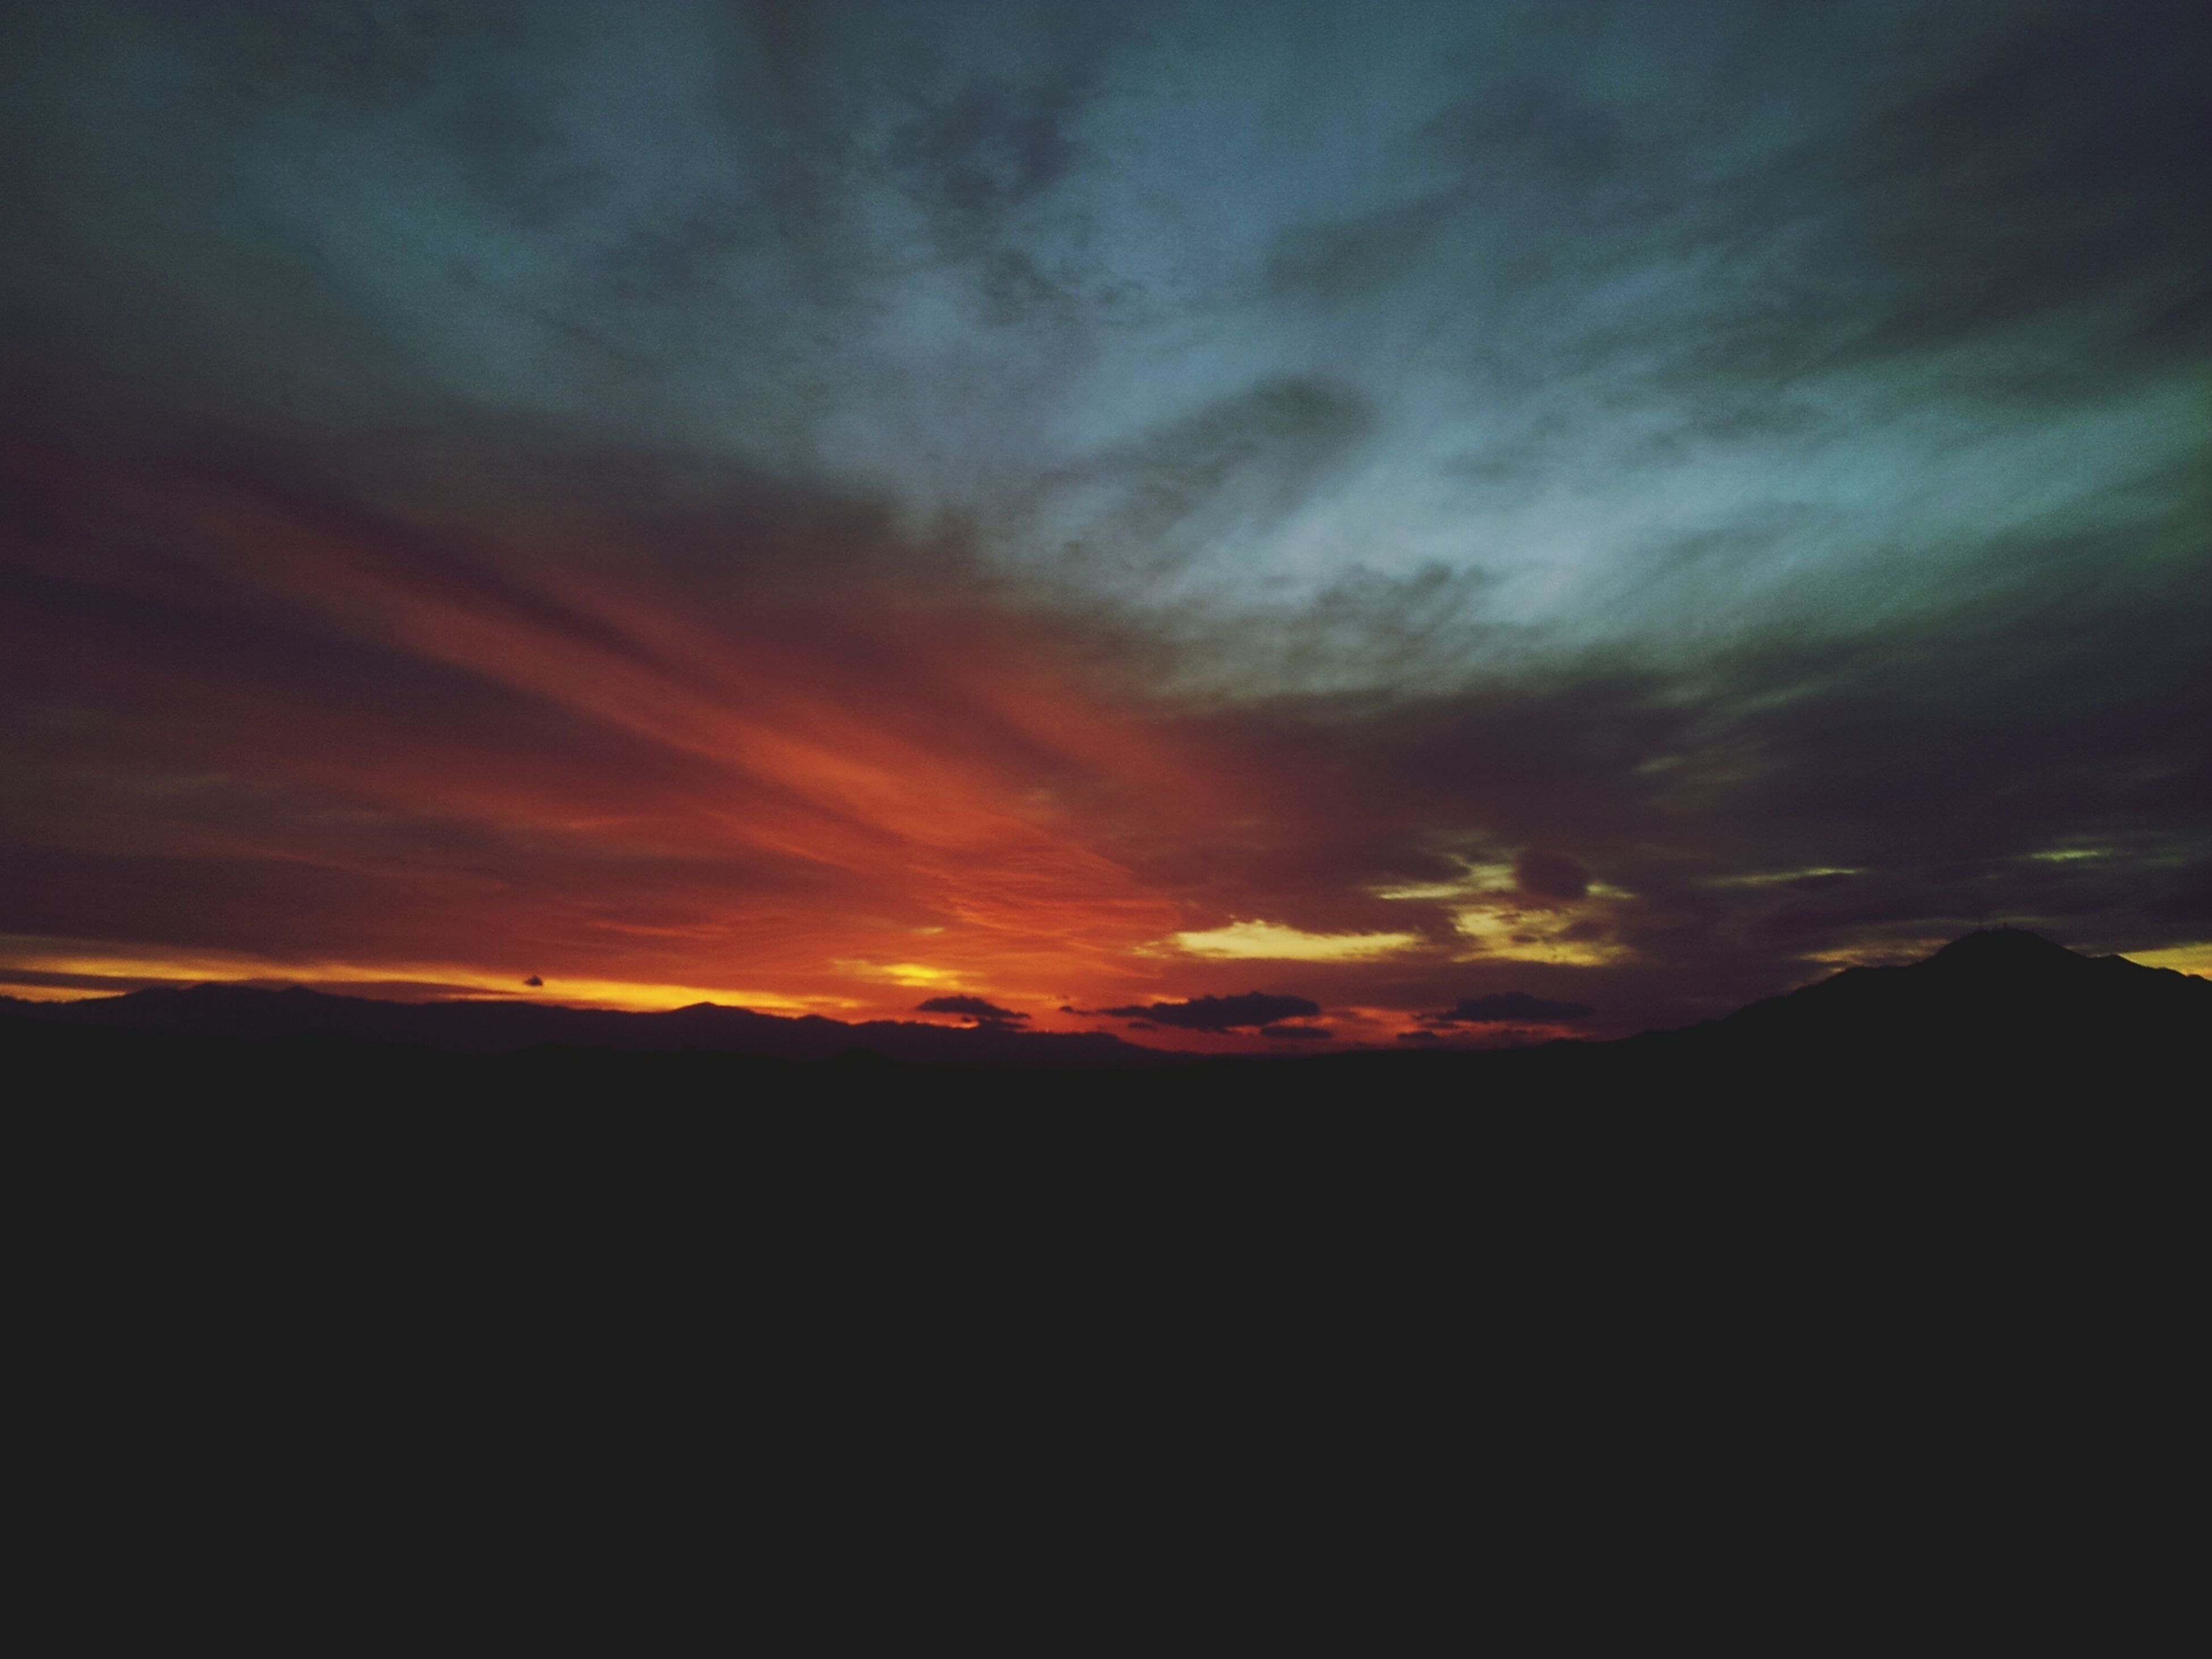 sunset, scenics, sky, silhouette, tranquil scene, beauty in nature, tranquility, cloud - sky, orange color, dramatic sky, idyllic, nature, landscape, cloudy, cloud, dark, majestic, mountain, atmospheric mood, dusk